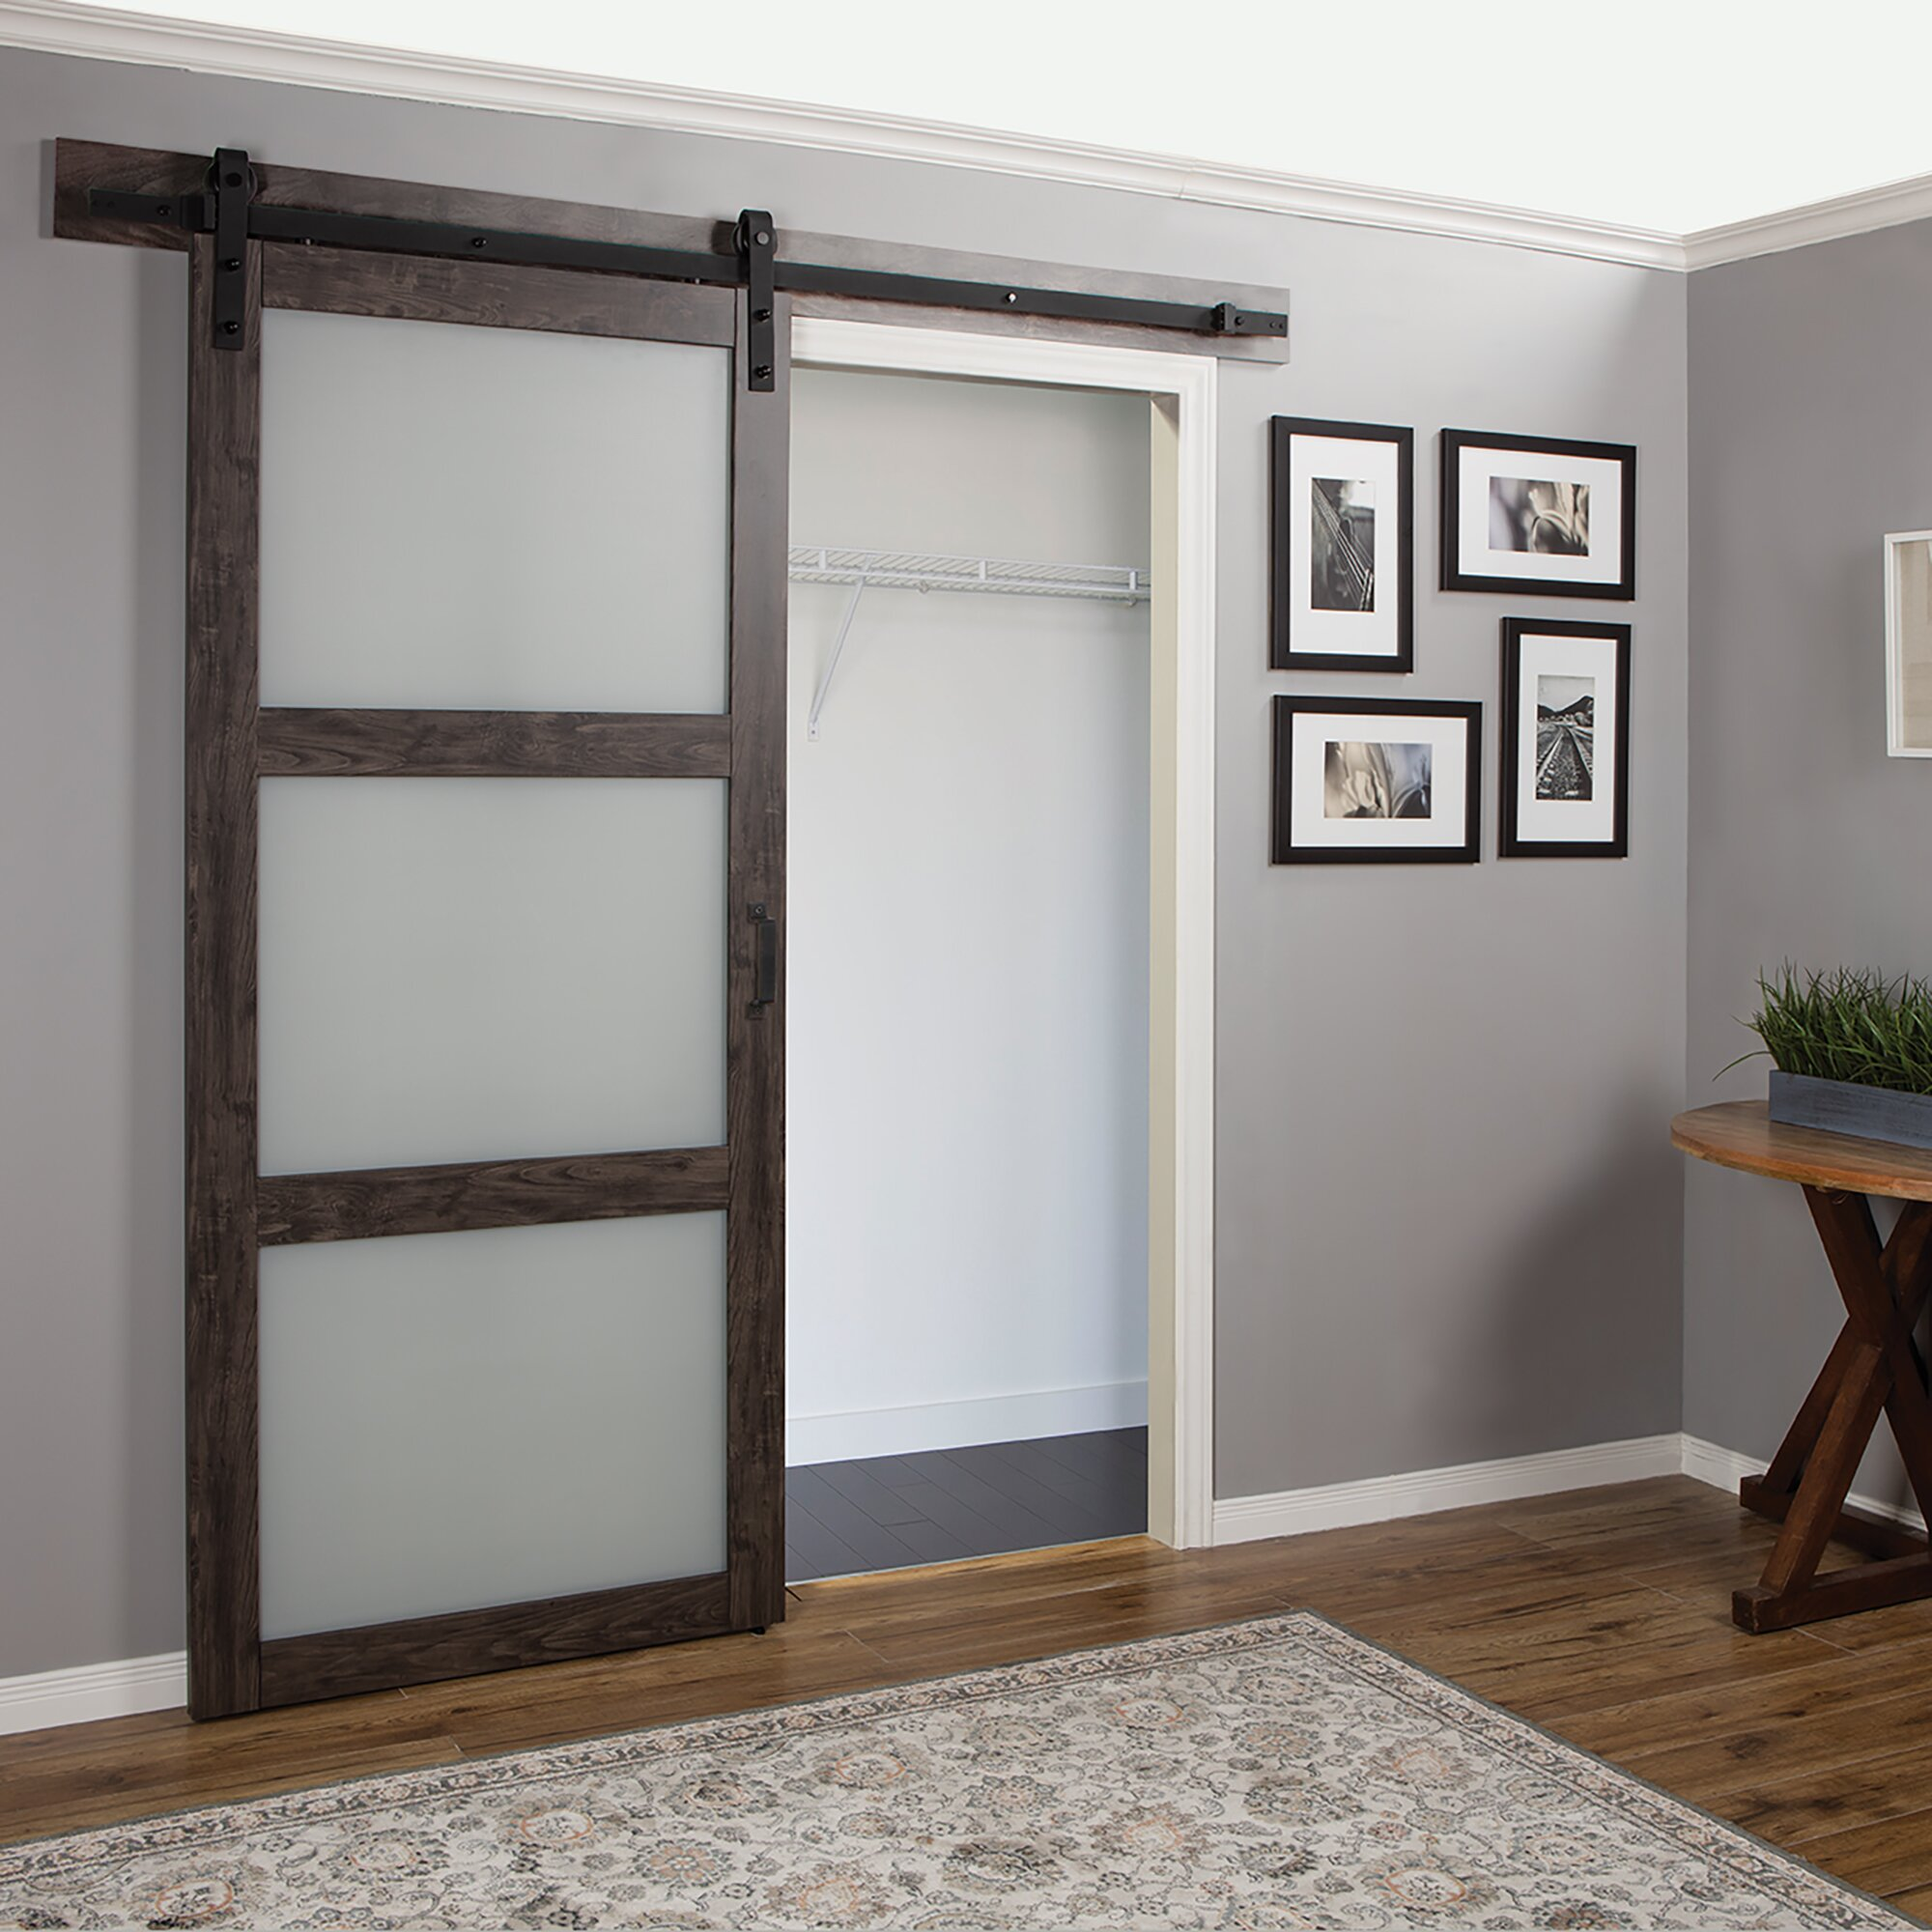 erias home designs continental frosted glass 1 panel ironage laminate interior barn door wayfair. Black Bedroom Furniture Sets. Home Design Ideas